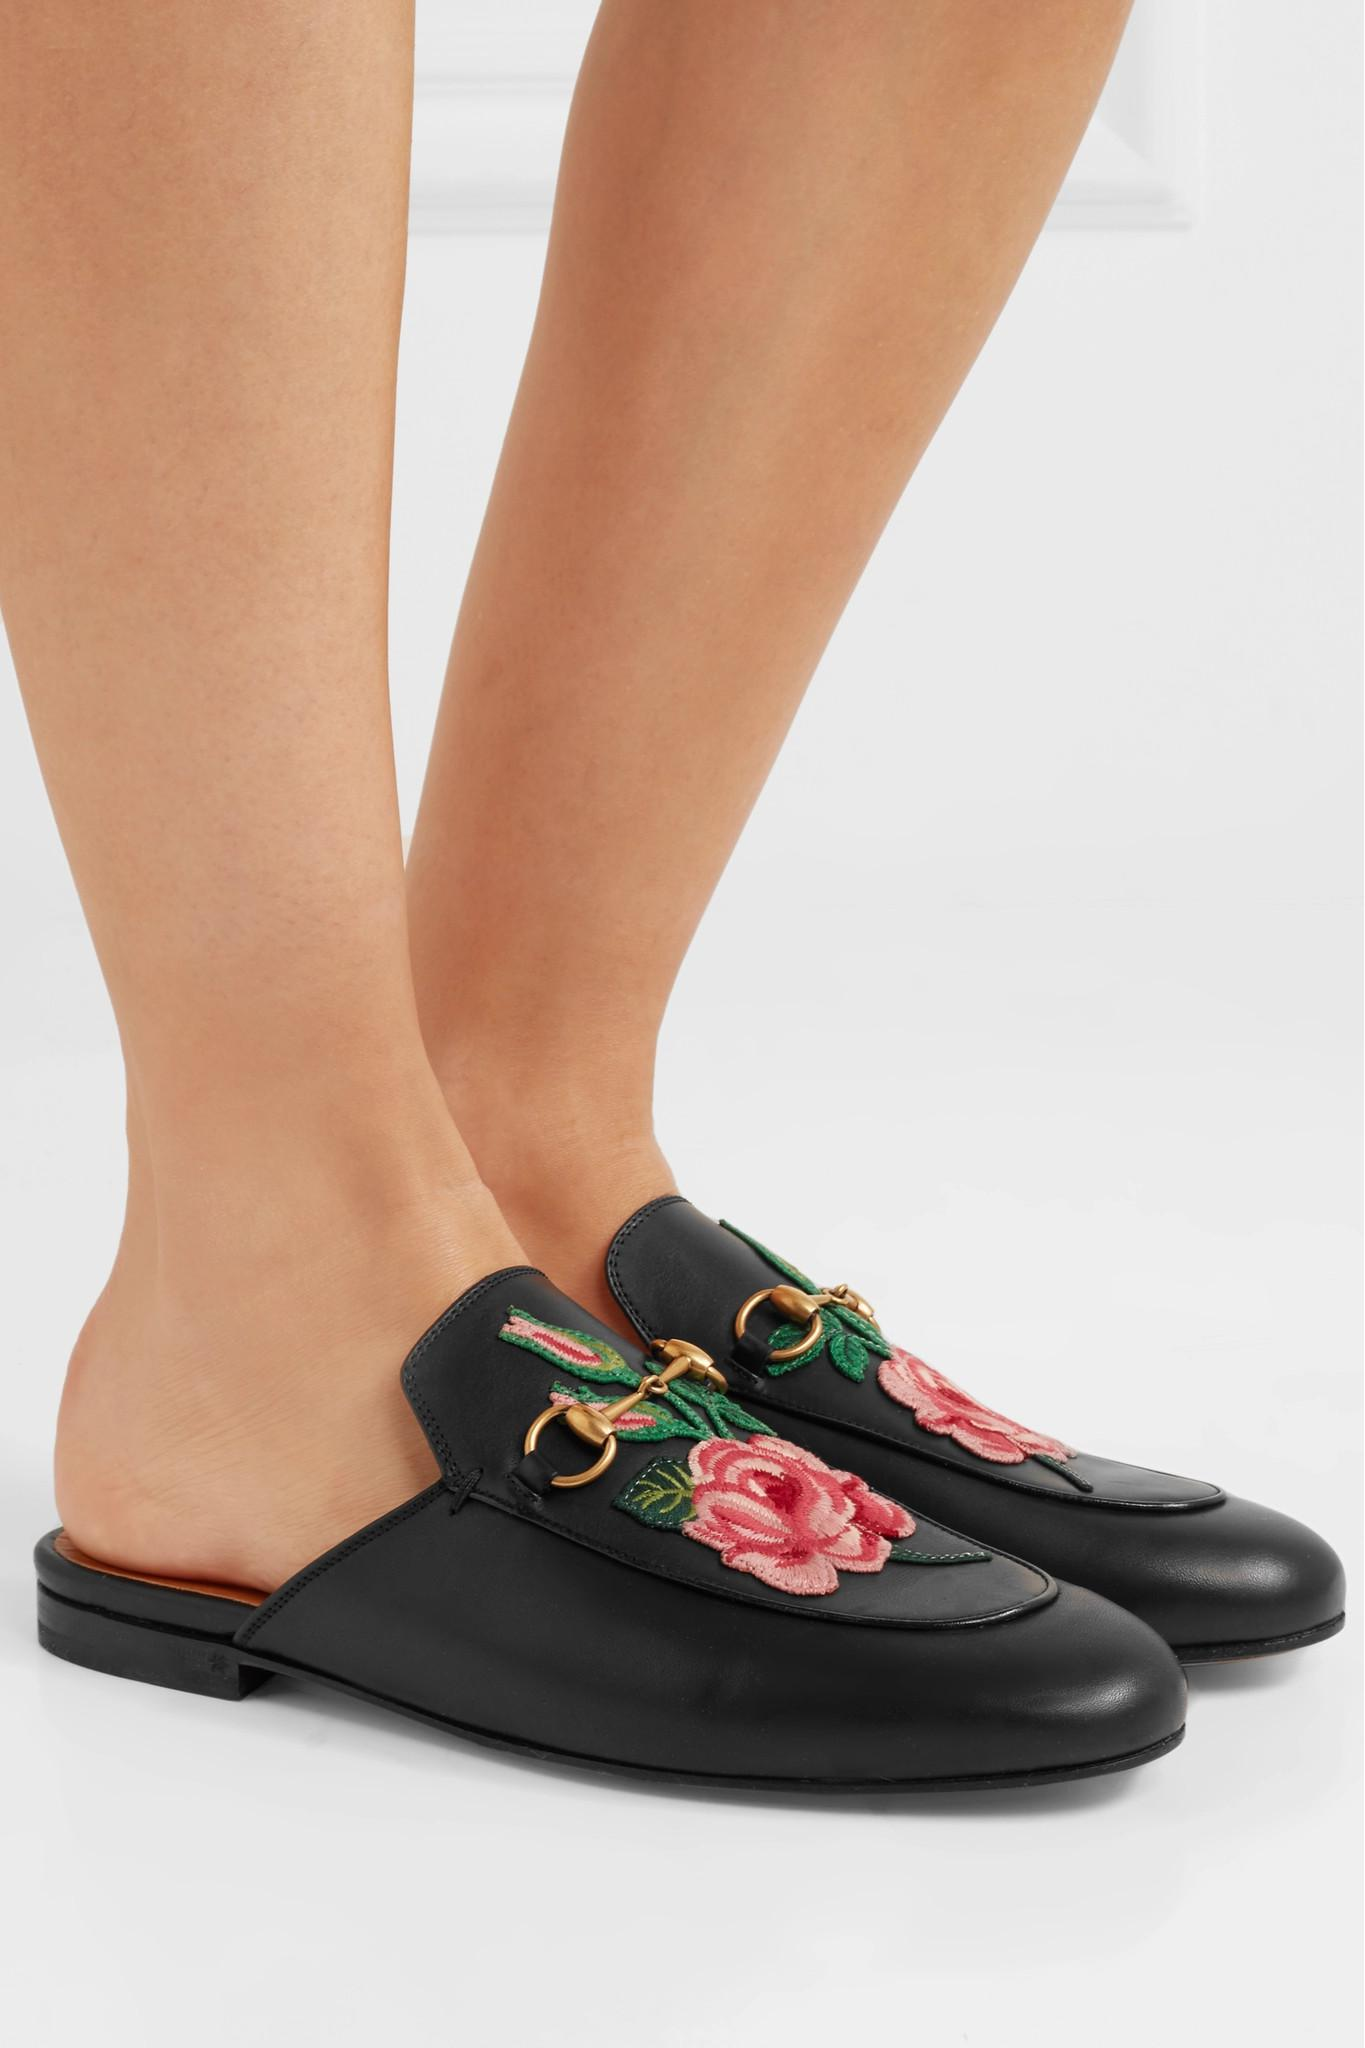 8a38e475ec9 Gucci - Black Princetown Appliquéd Horsebit-detailed Leather Slippers -  Lyst. View fullscreen